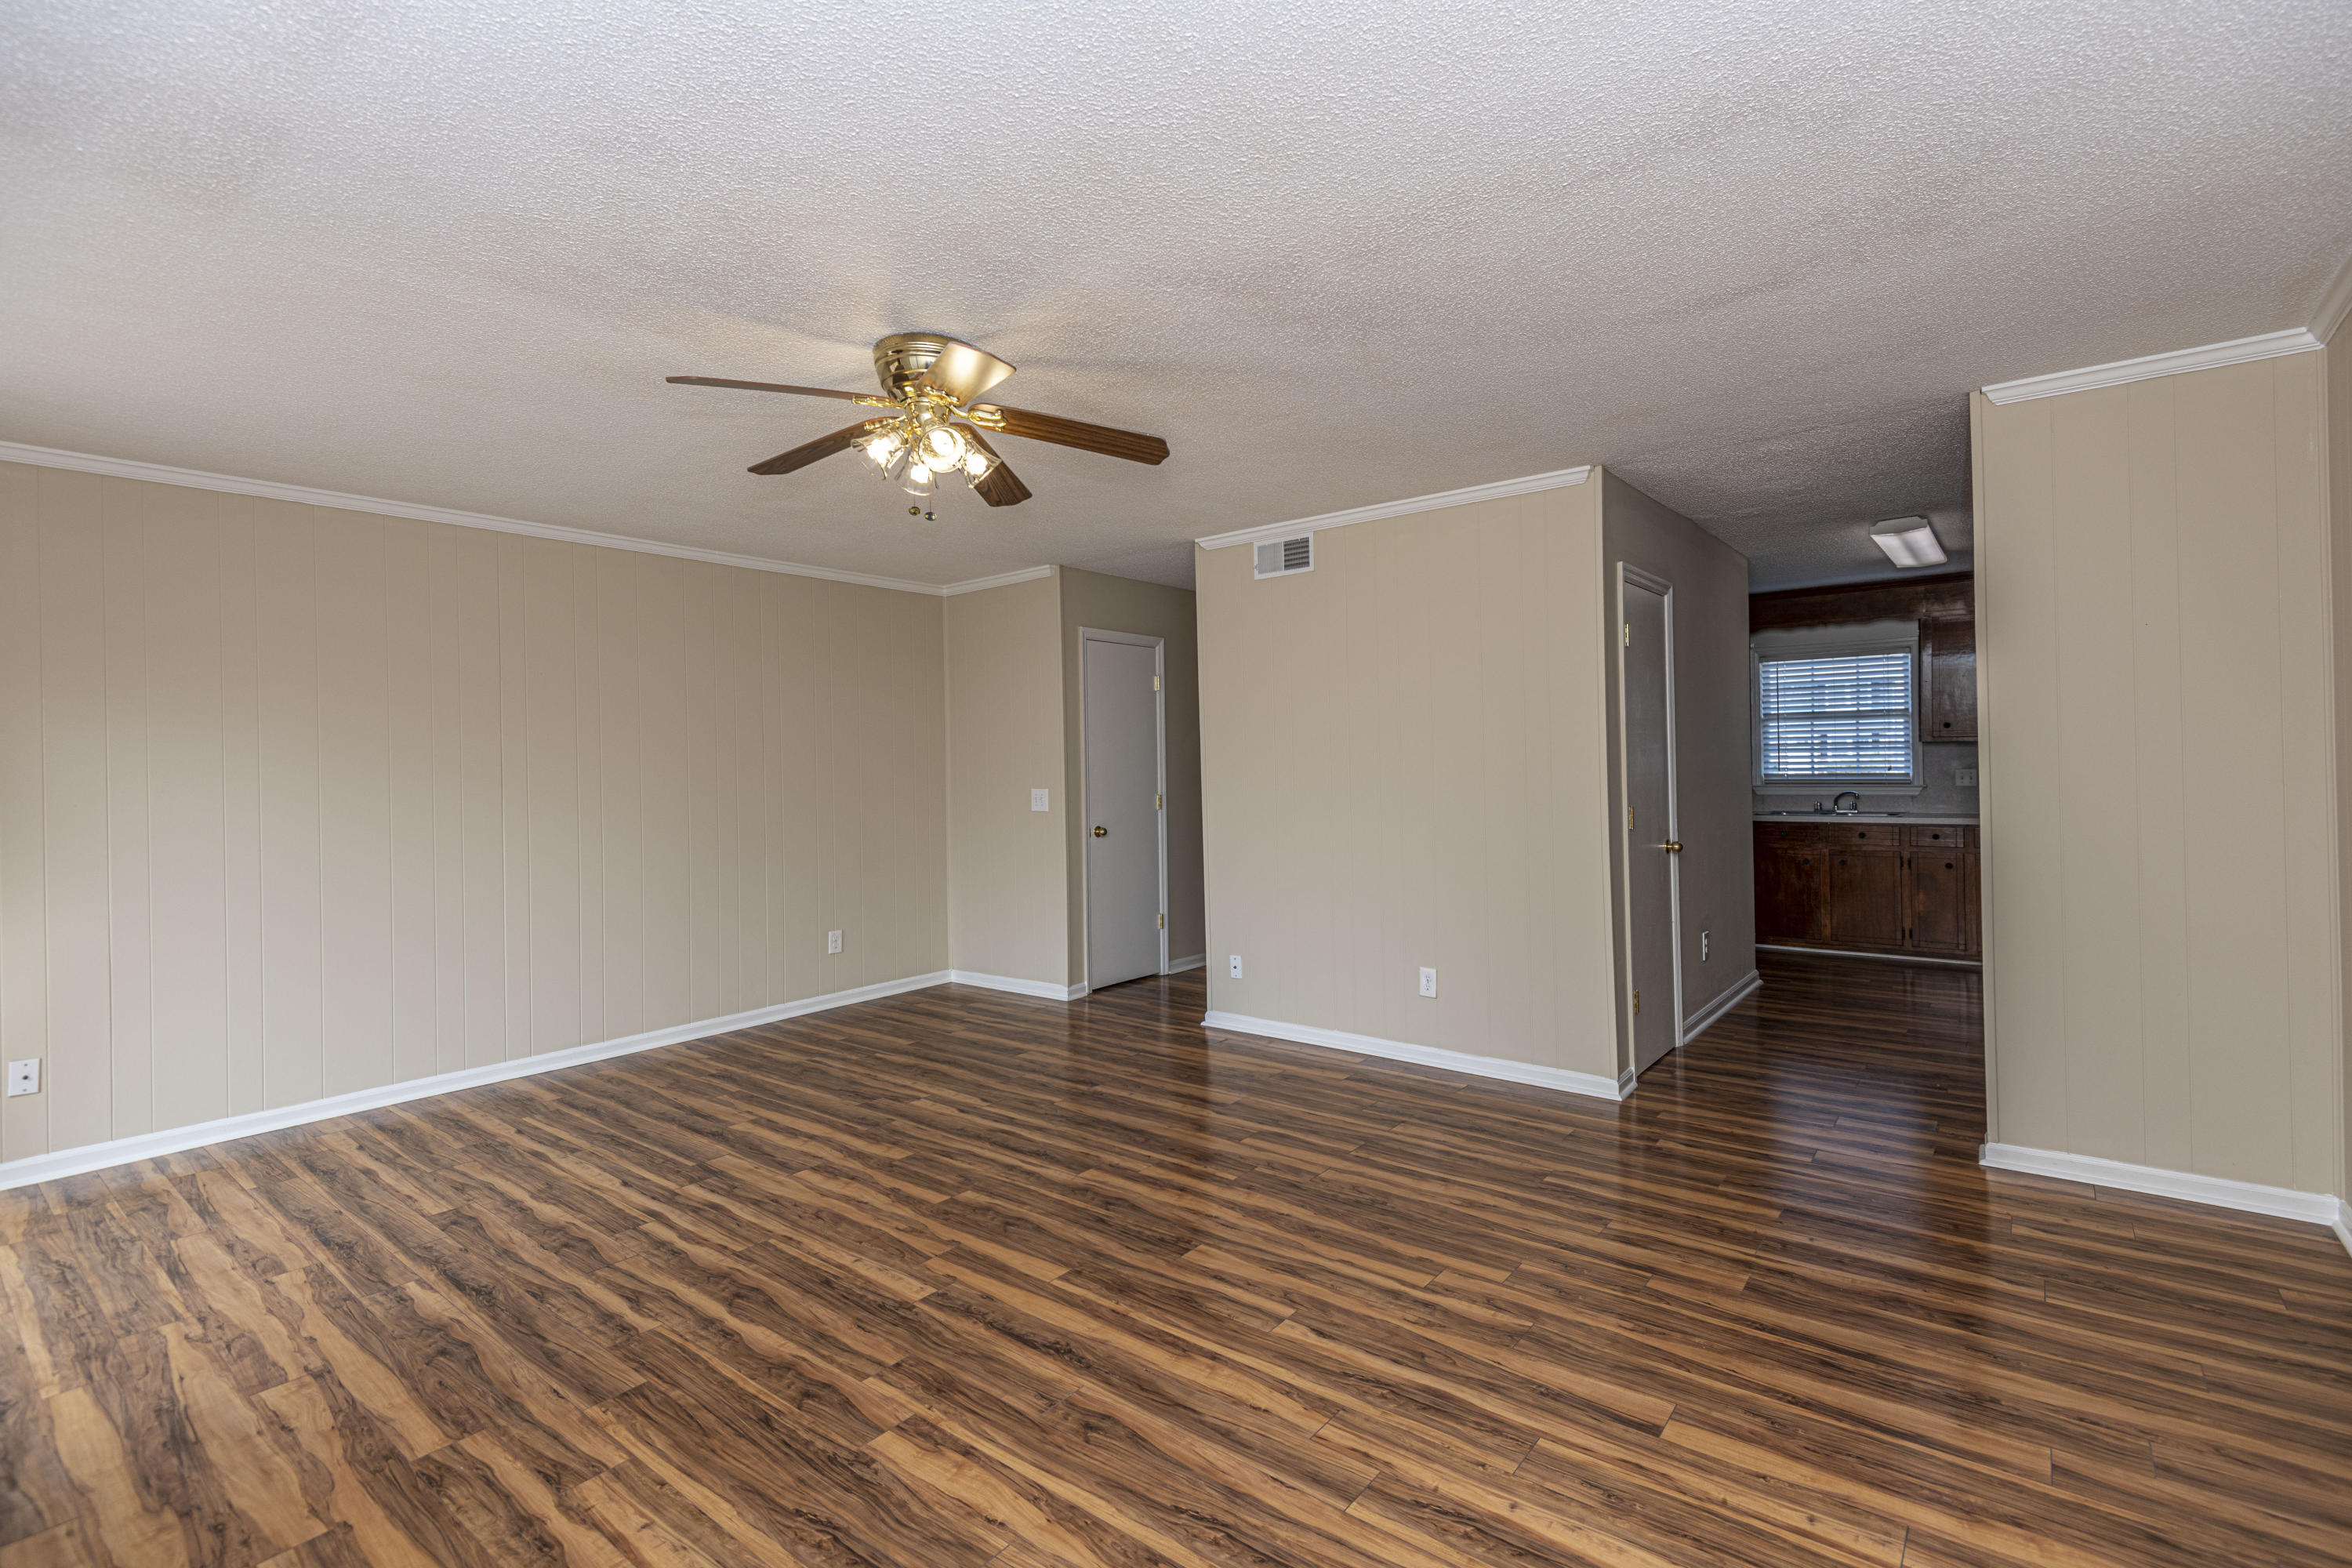 Foxborough Town Houses Homes For Sale - 120 Brush, Goose Creek, SC - 23